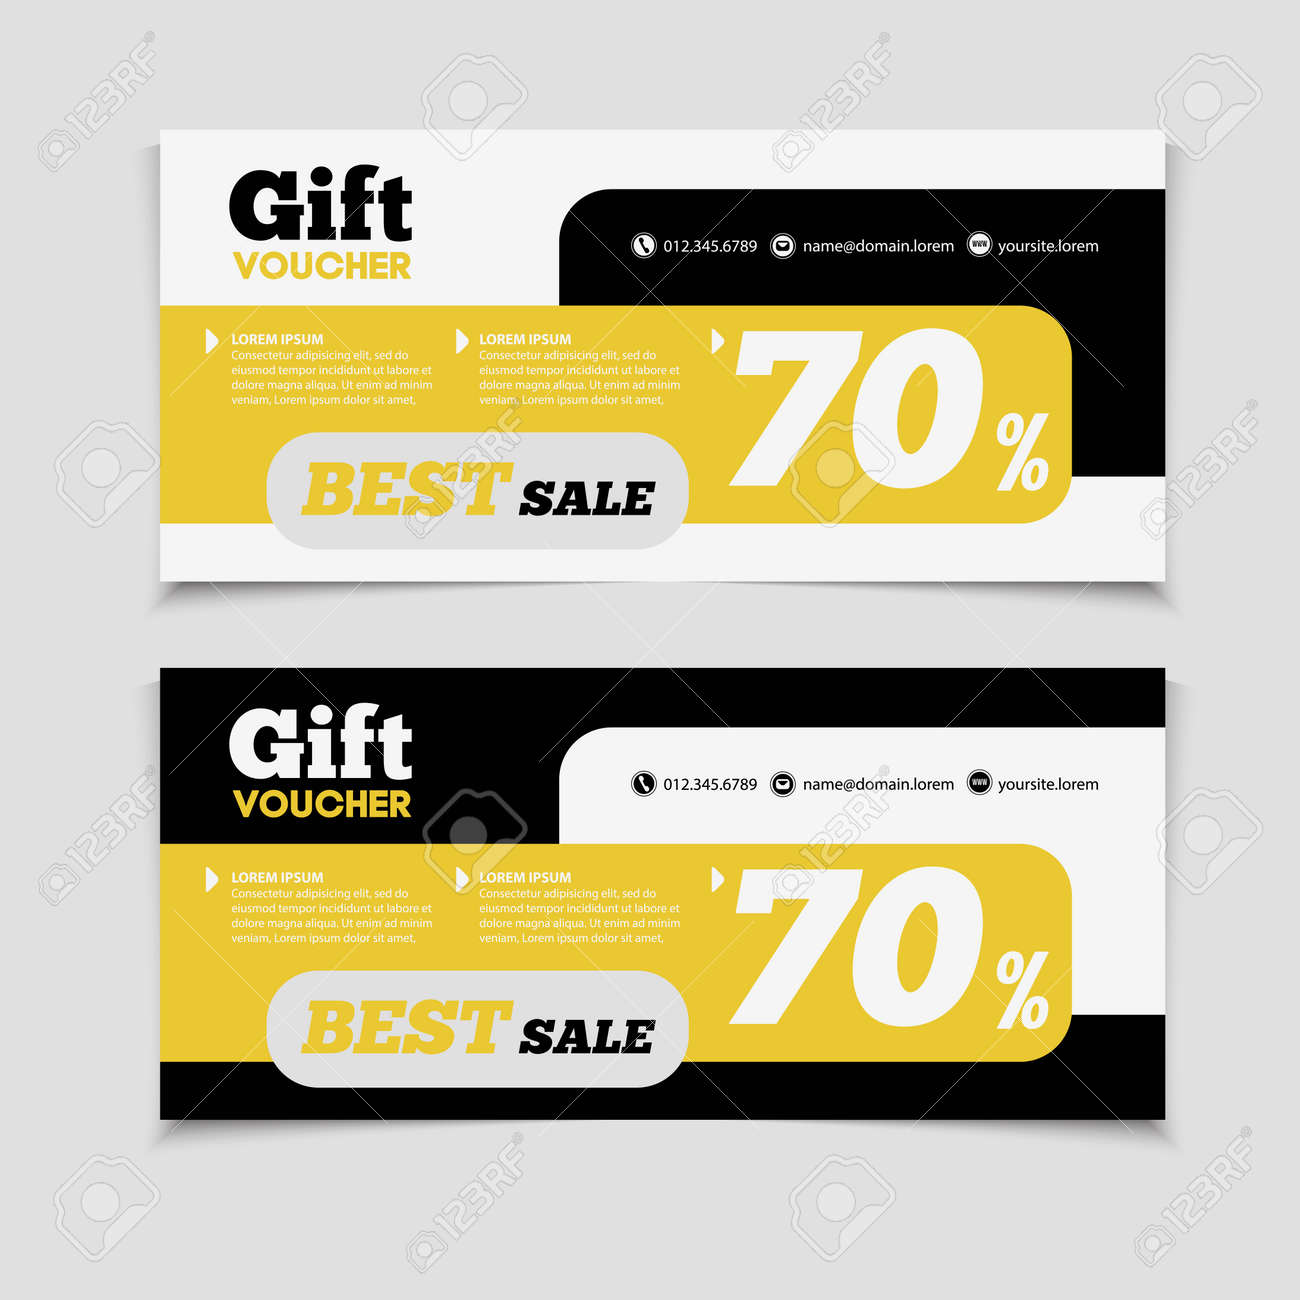 Gift Voucher Template With Amount Of Discount And Contact